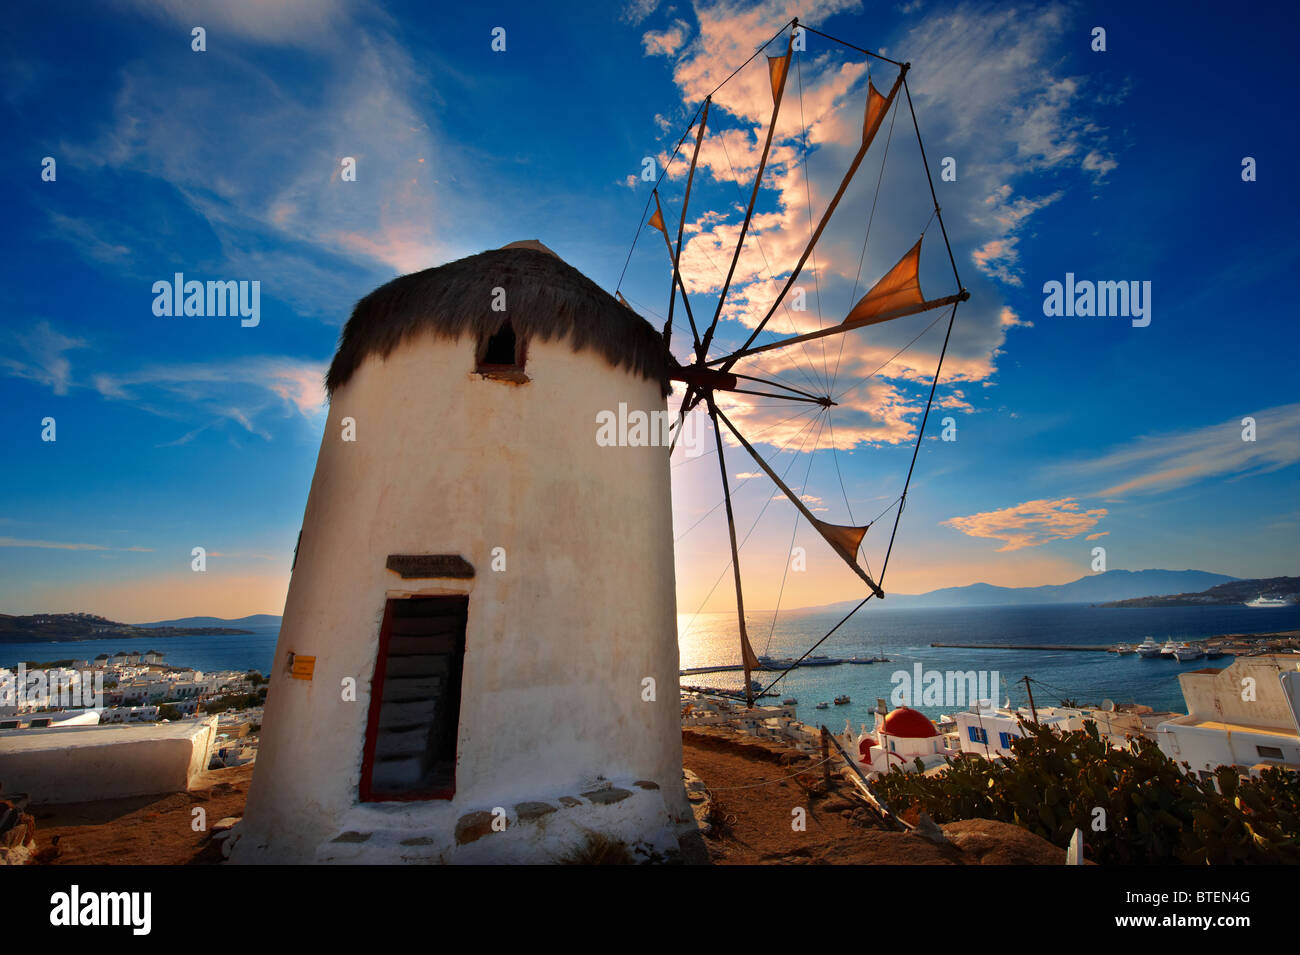 Sunset over the The traditional Greek windmills of Mykonos Upper Chora. Cyclades Islands, Greece - Stock Image